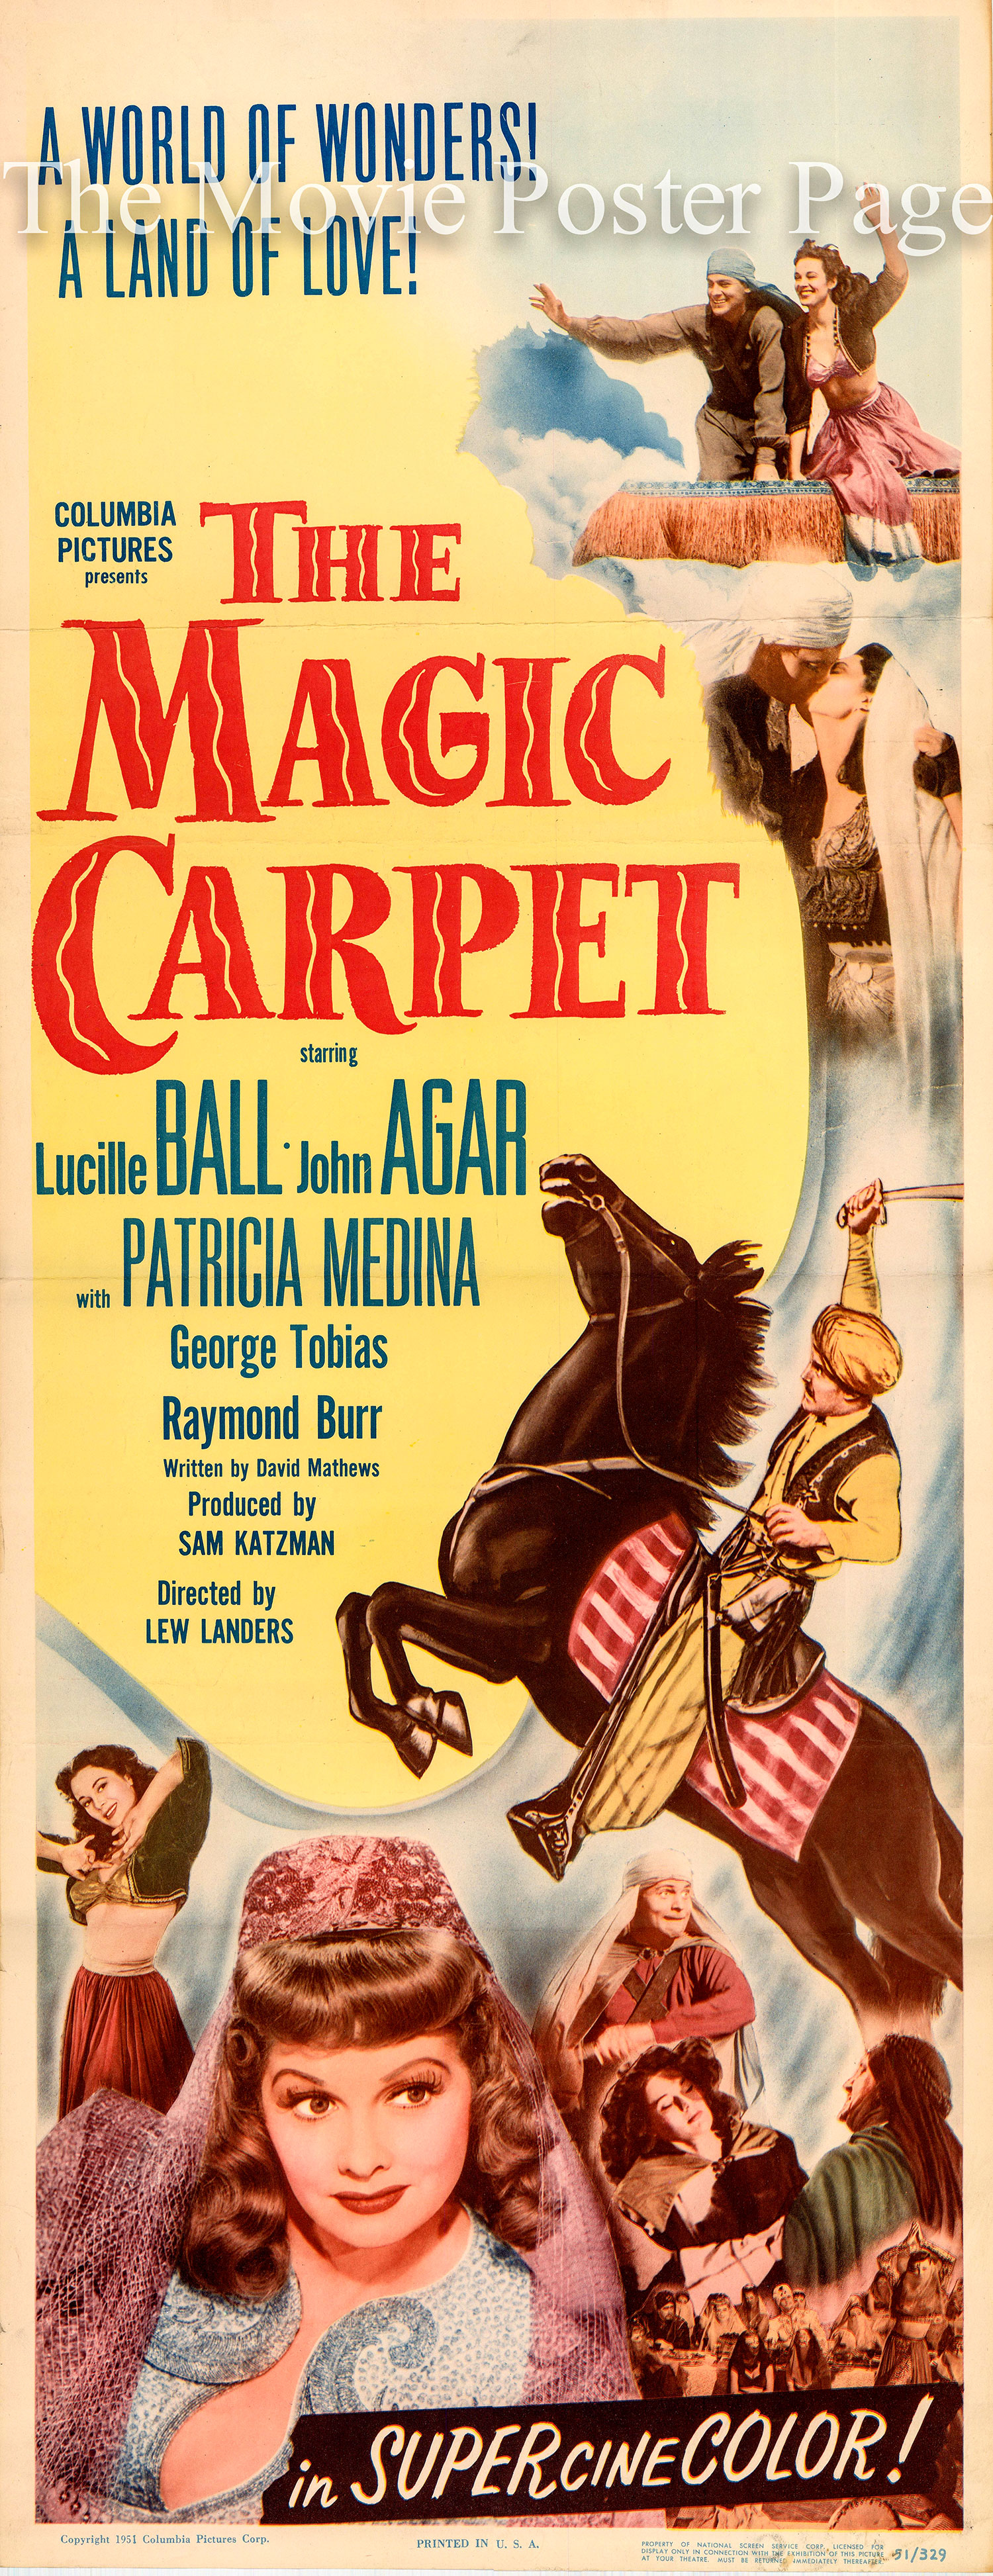 Pictured is a US insert for the 1951 Lew Landers film The Magic Carpet starring Lucille Ball.